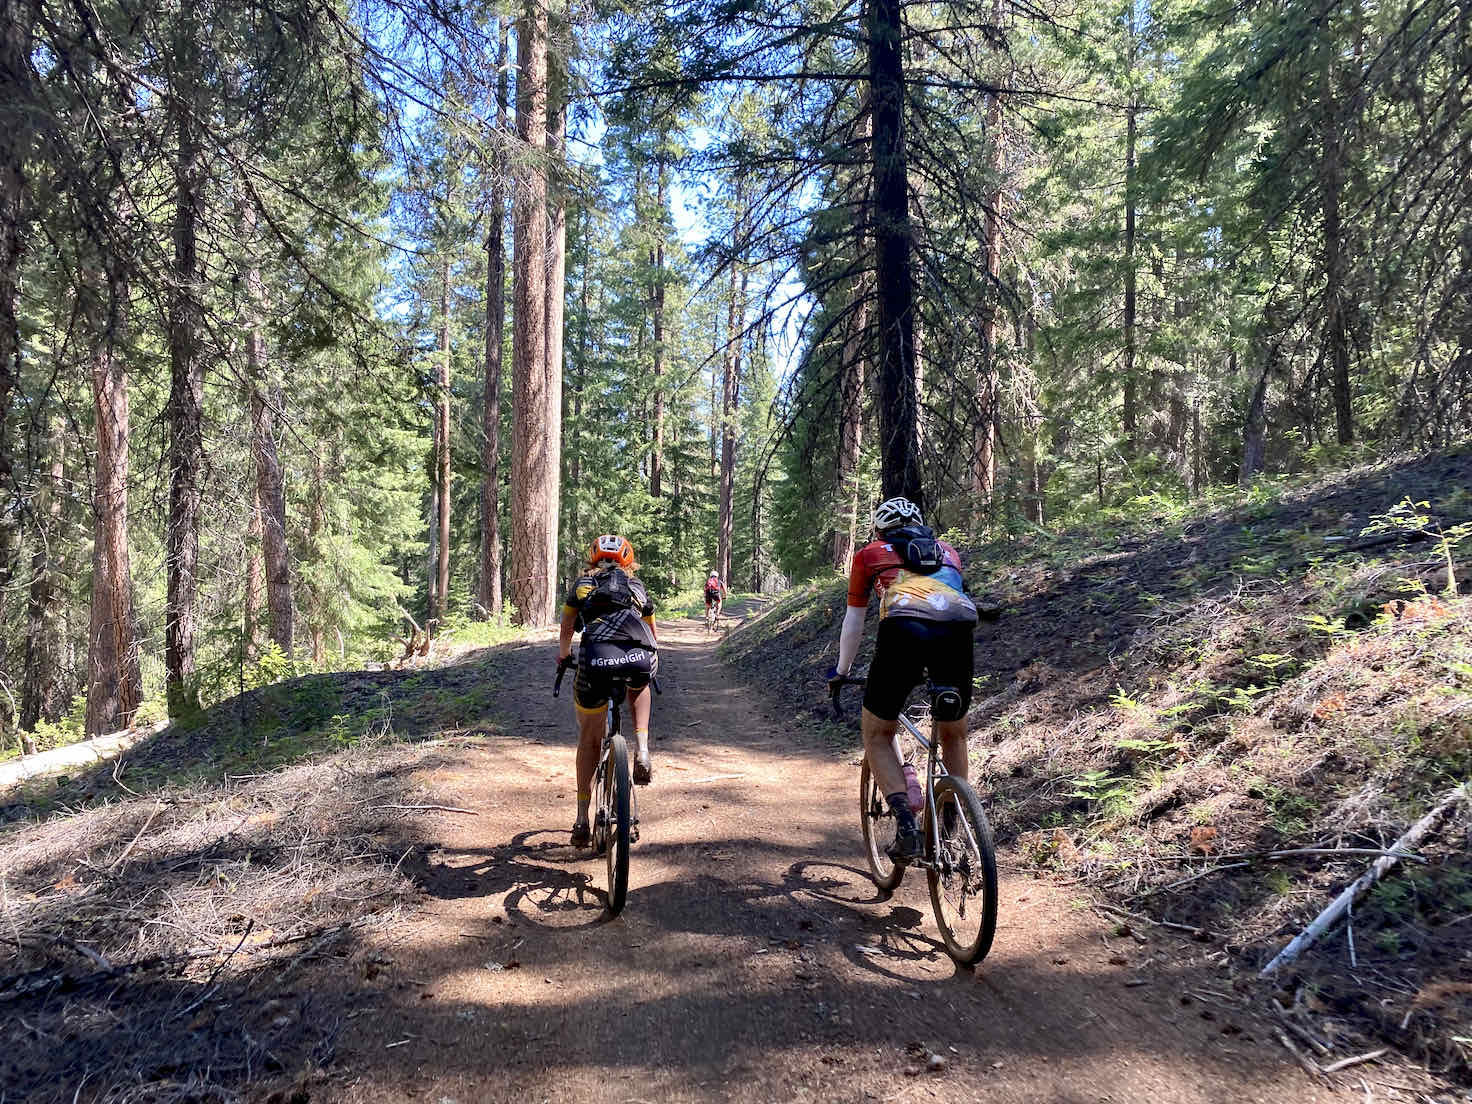 A couple of gravel cyclists riding shoulder to shoulder on the Black Butte dirt roads.